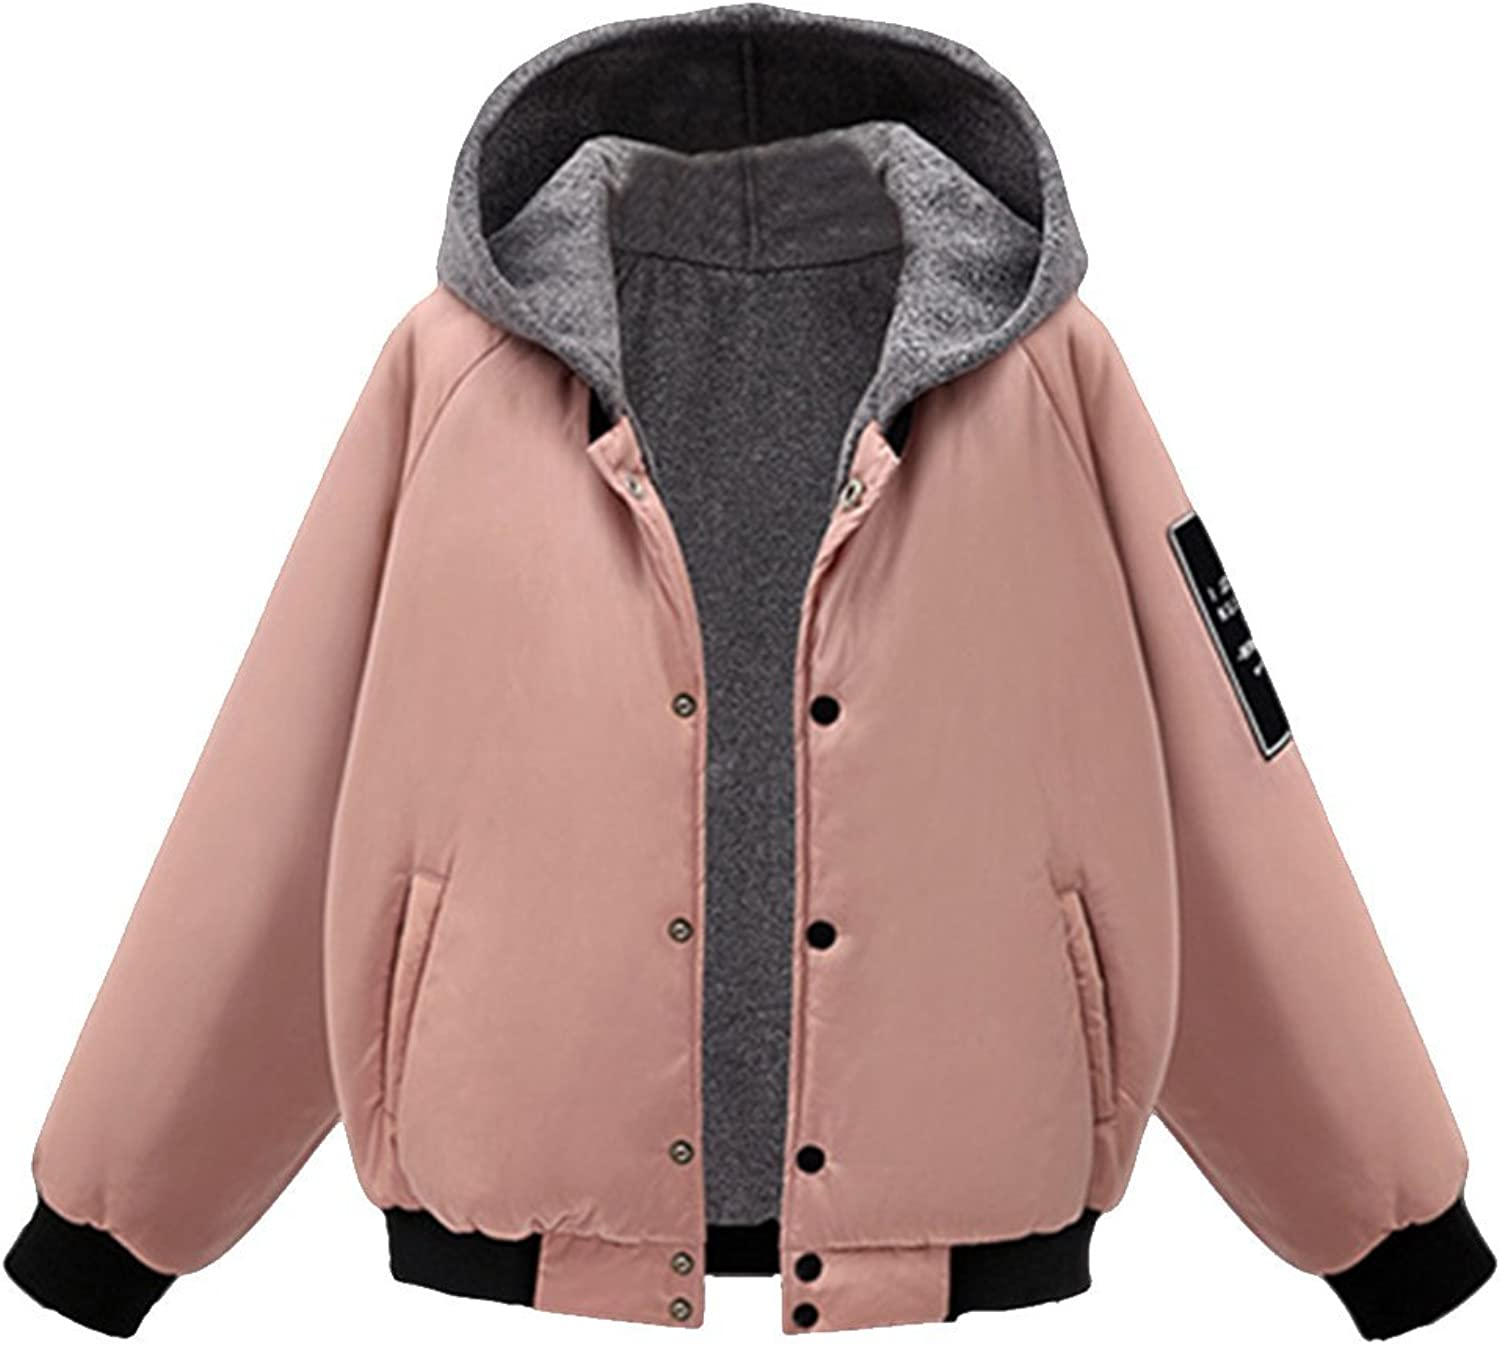 EVEDESIGN Women's Pressed Button Hooded Coats Short Baseball Outwear Coat Pockets